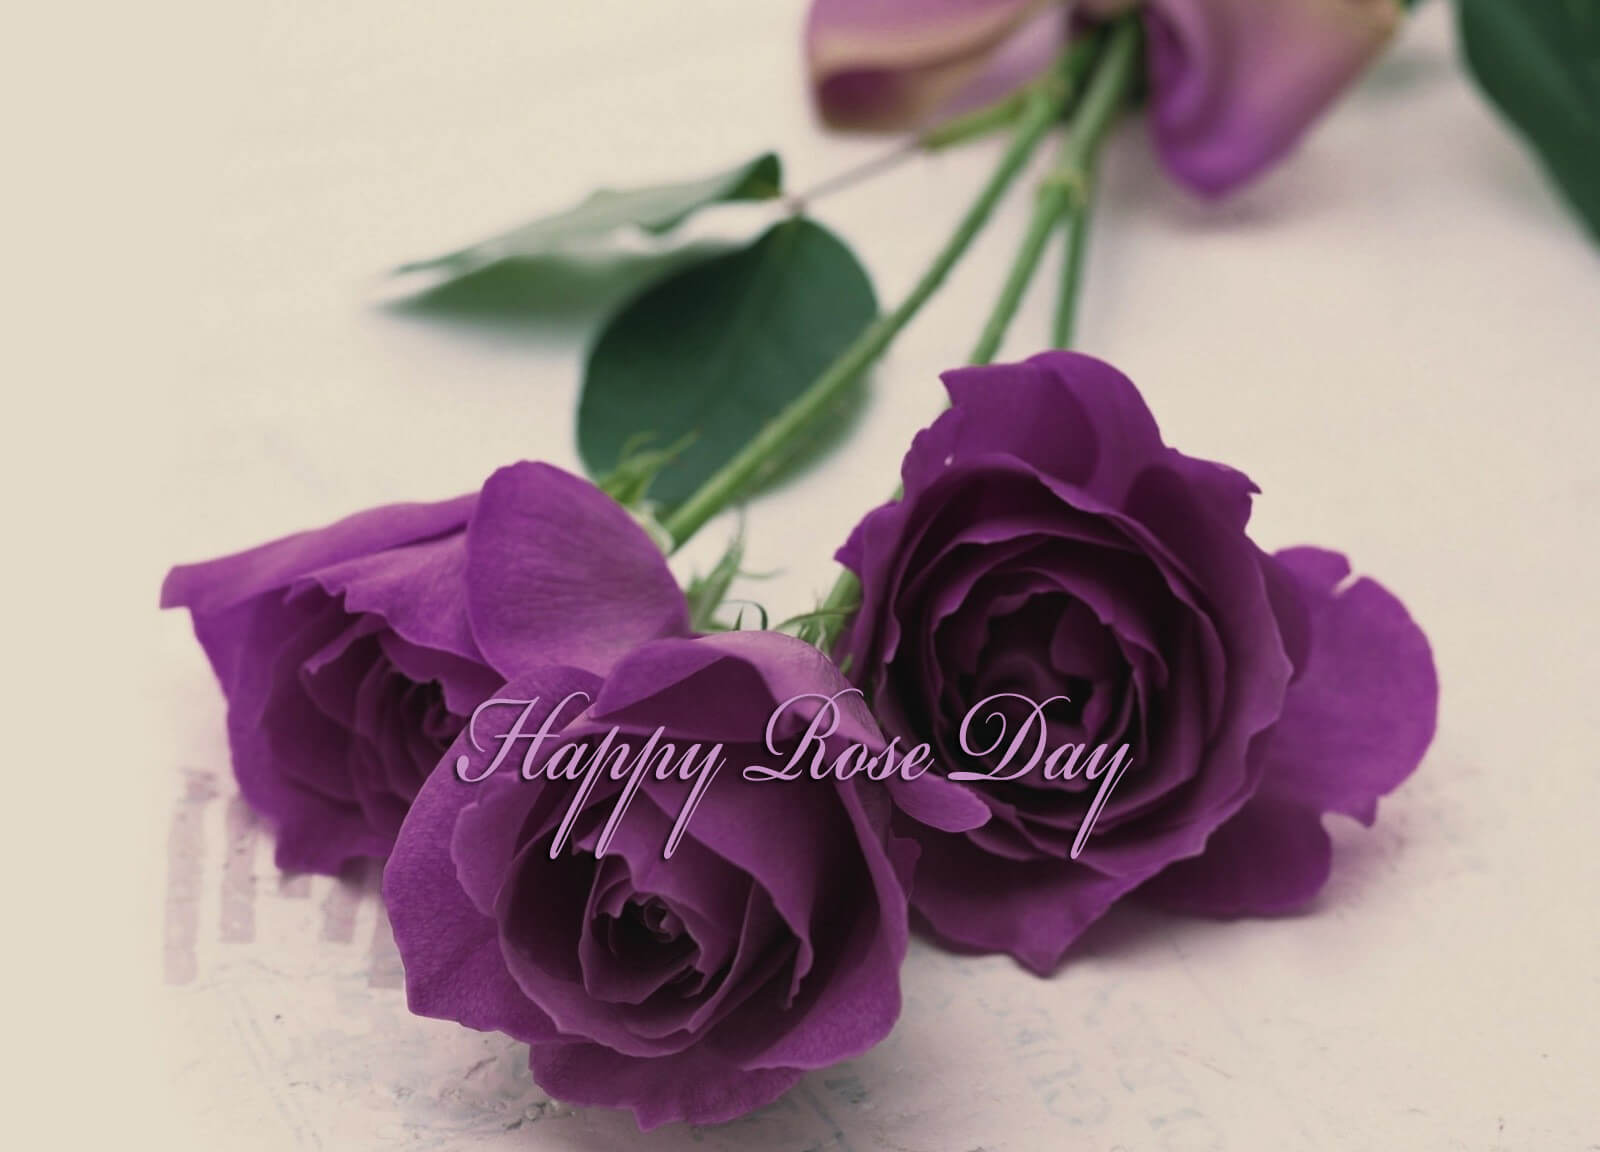 happy rose day wishes violet purple greetings image background hd wallpaper